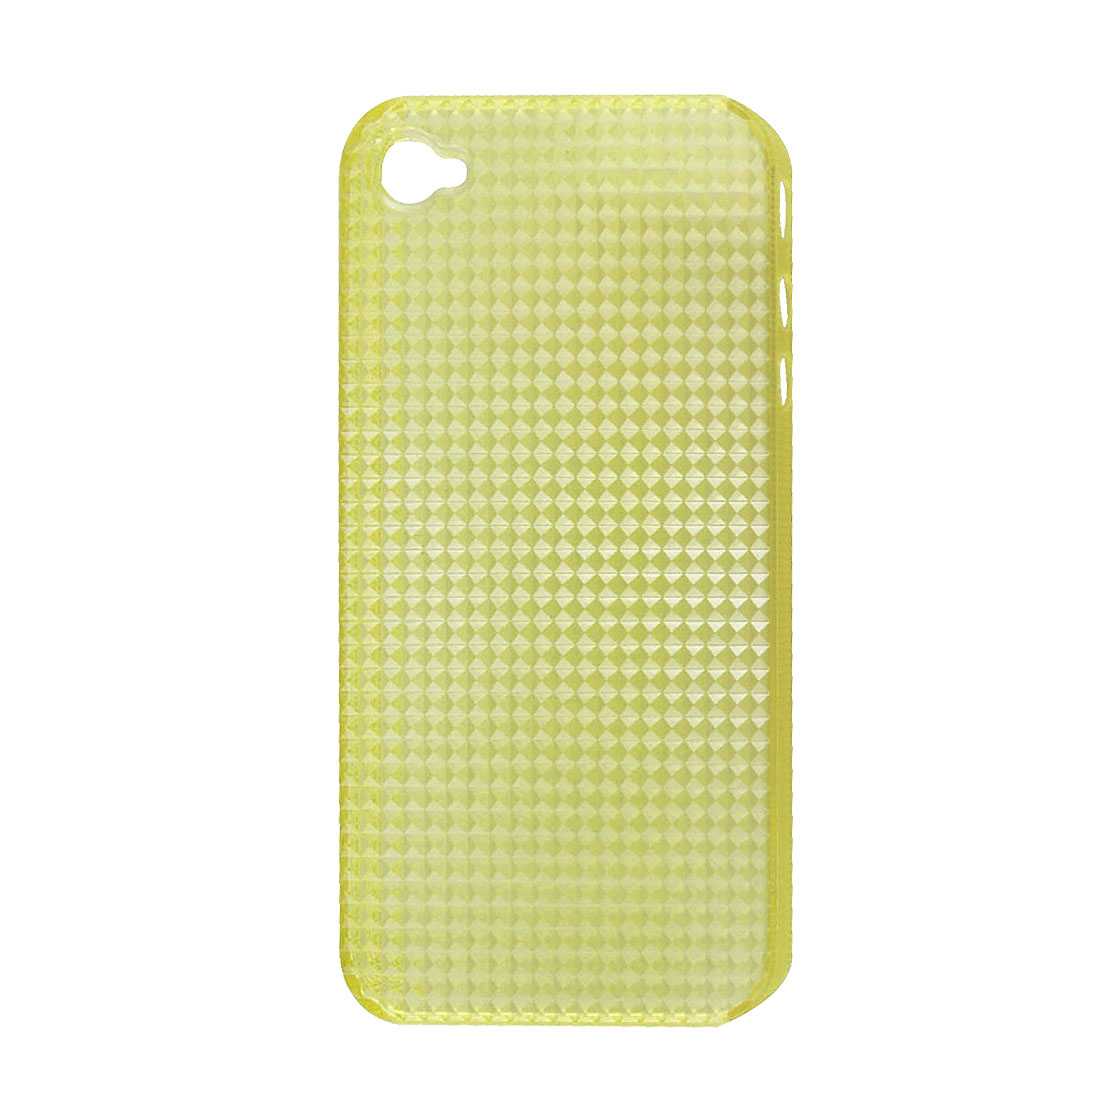 Yellow Rhombic Plastic Back Case for iPhone 4 4G 4S 4GS